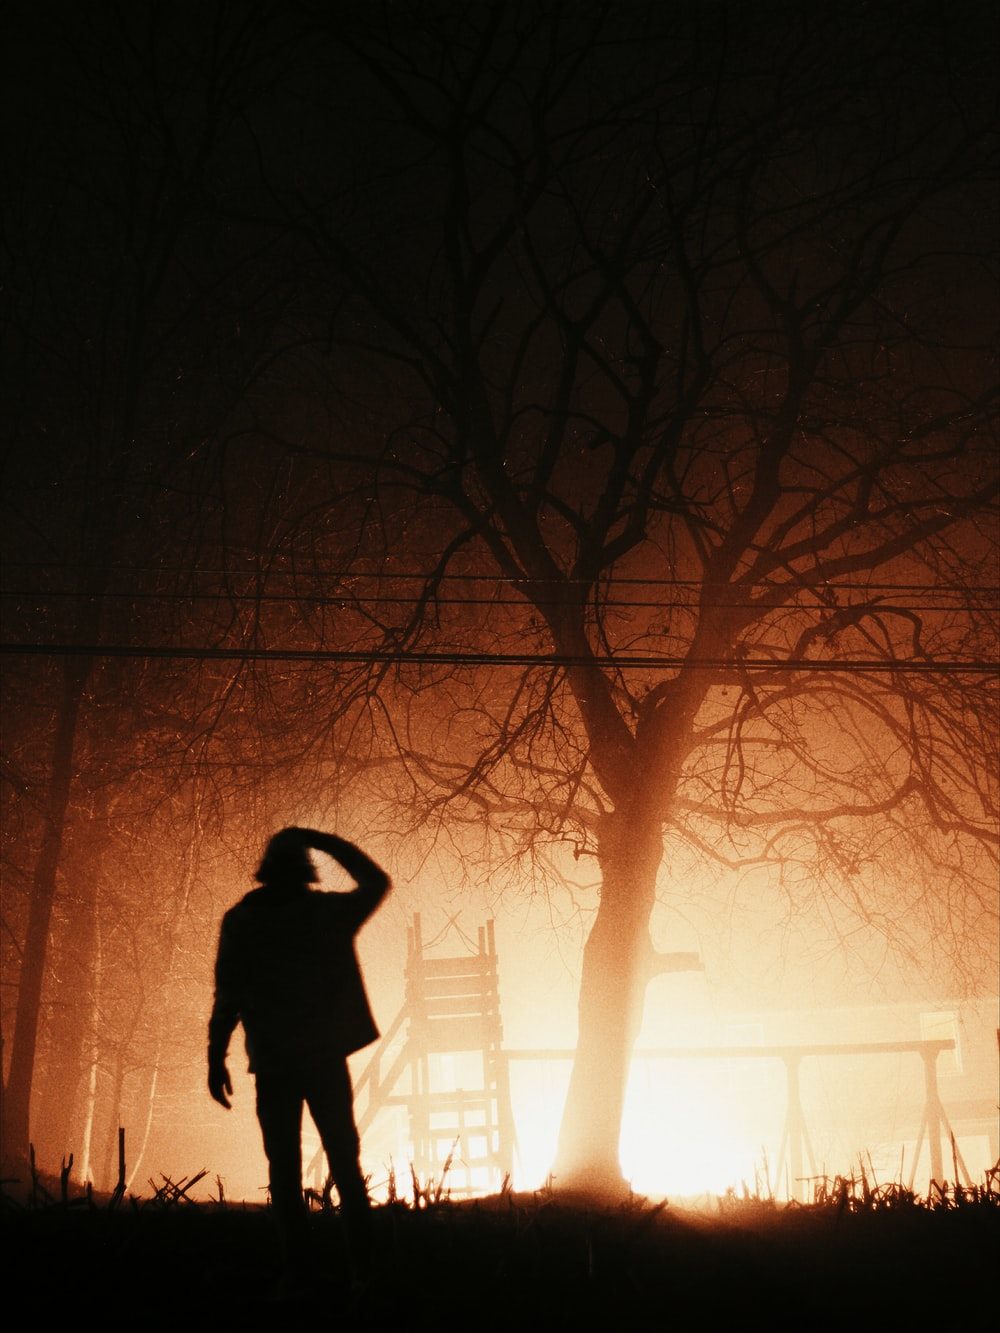 silhouette photo of person standing under the bare tree